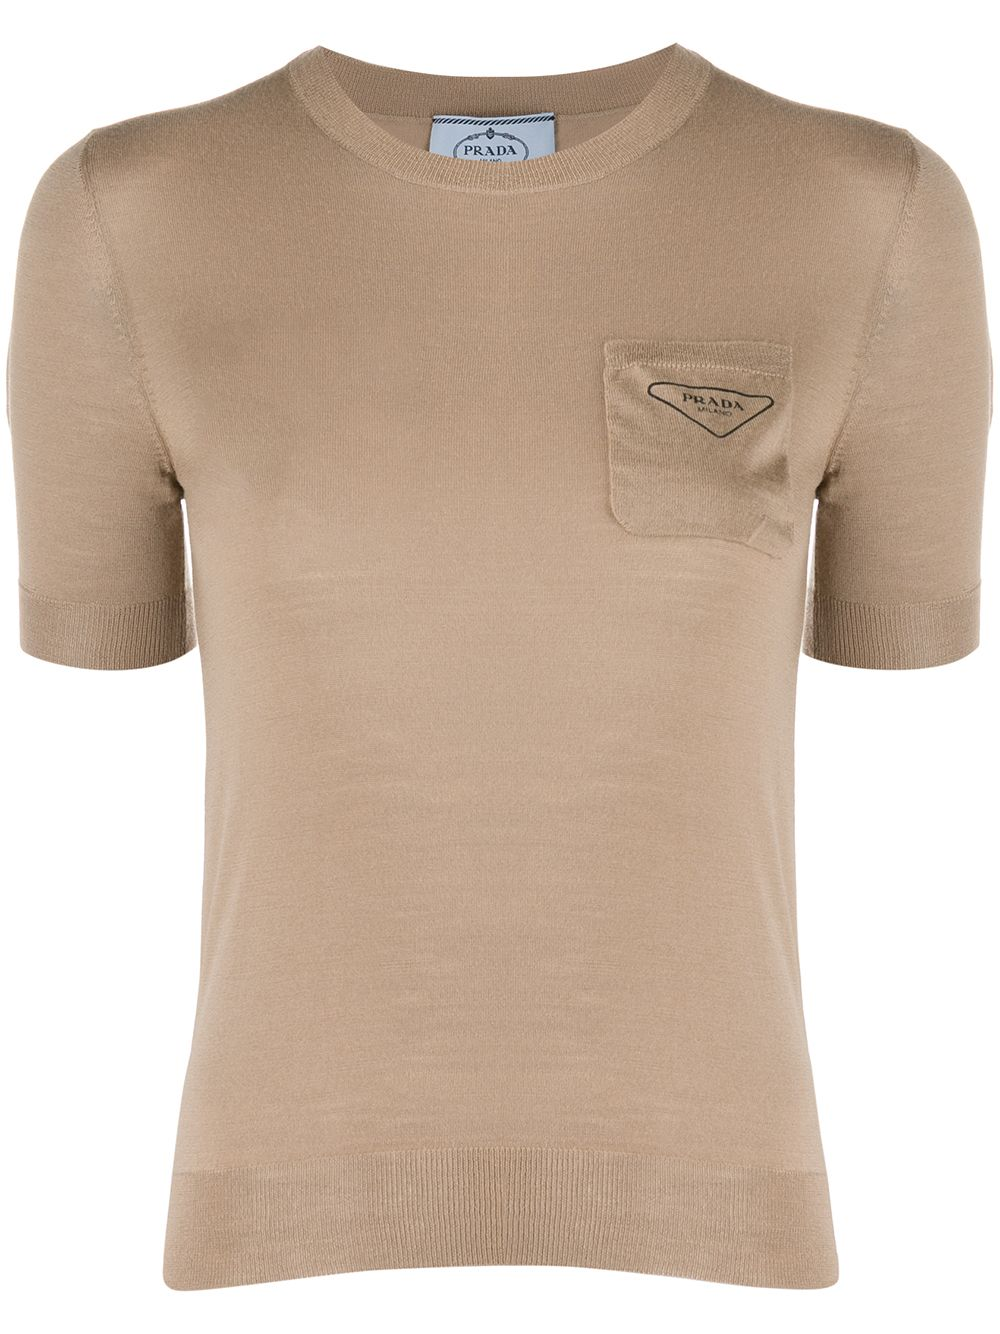 Prada chest pocket crew neck top - Brown von Prada